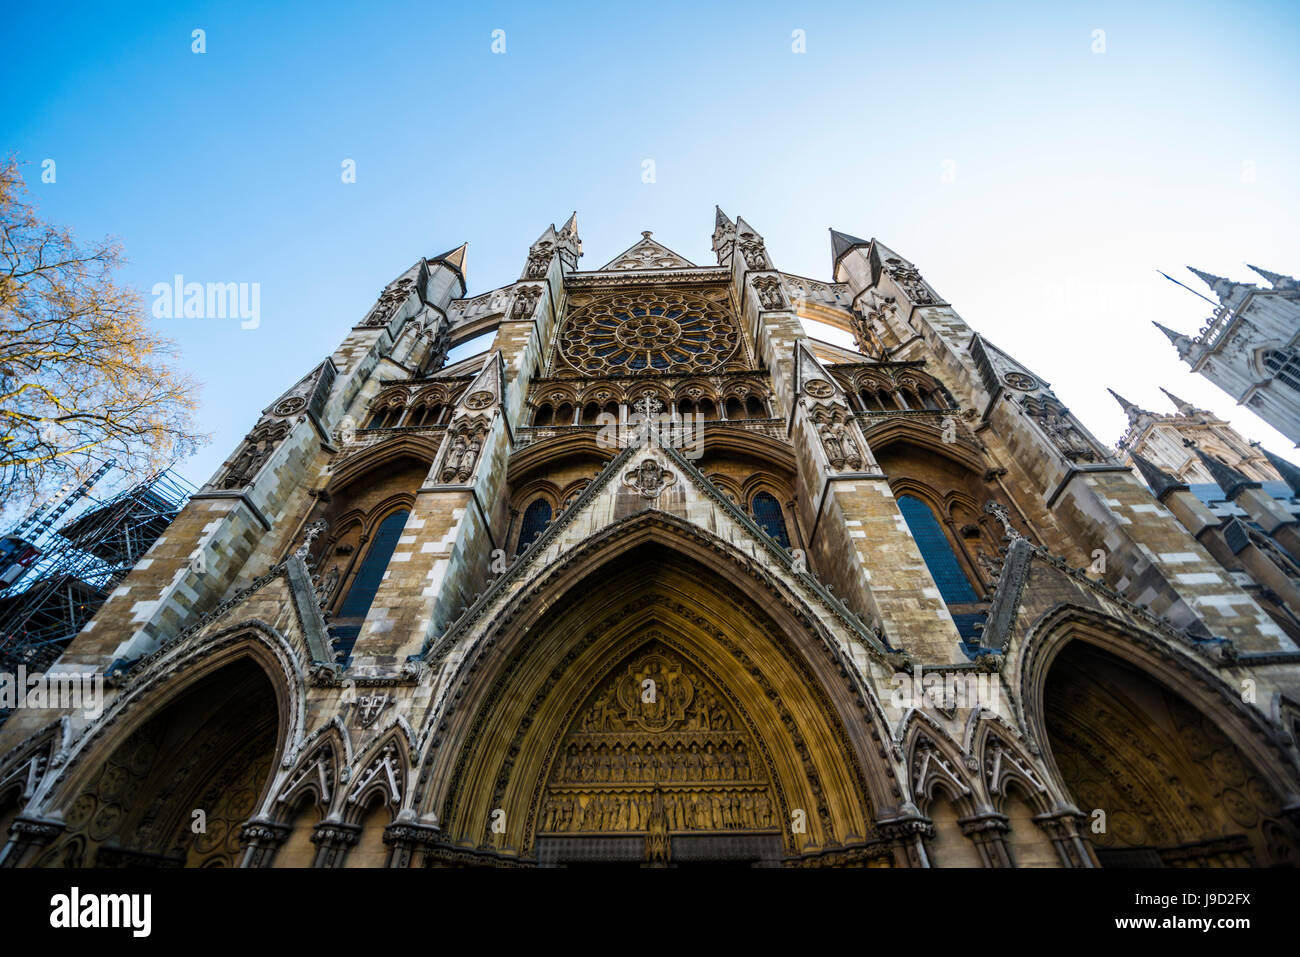 Westminster Abbey, the northern cross-ship with portal arches, round windows and shoring towers, London, England, - Stock Image